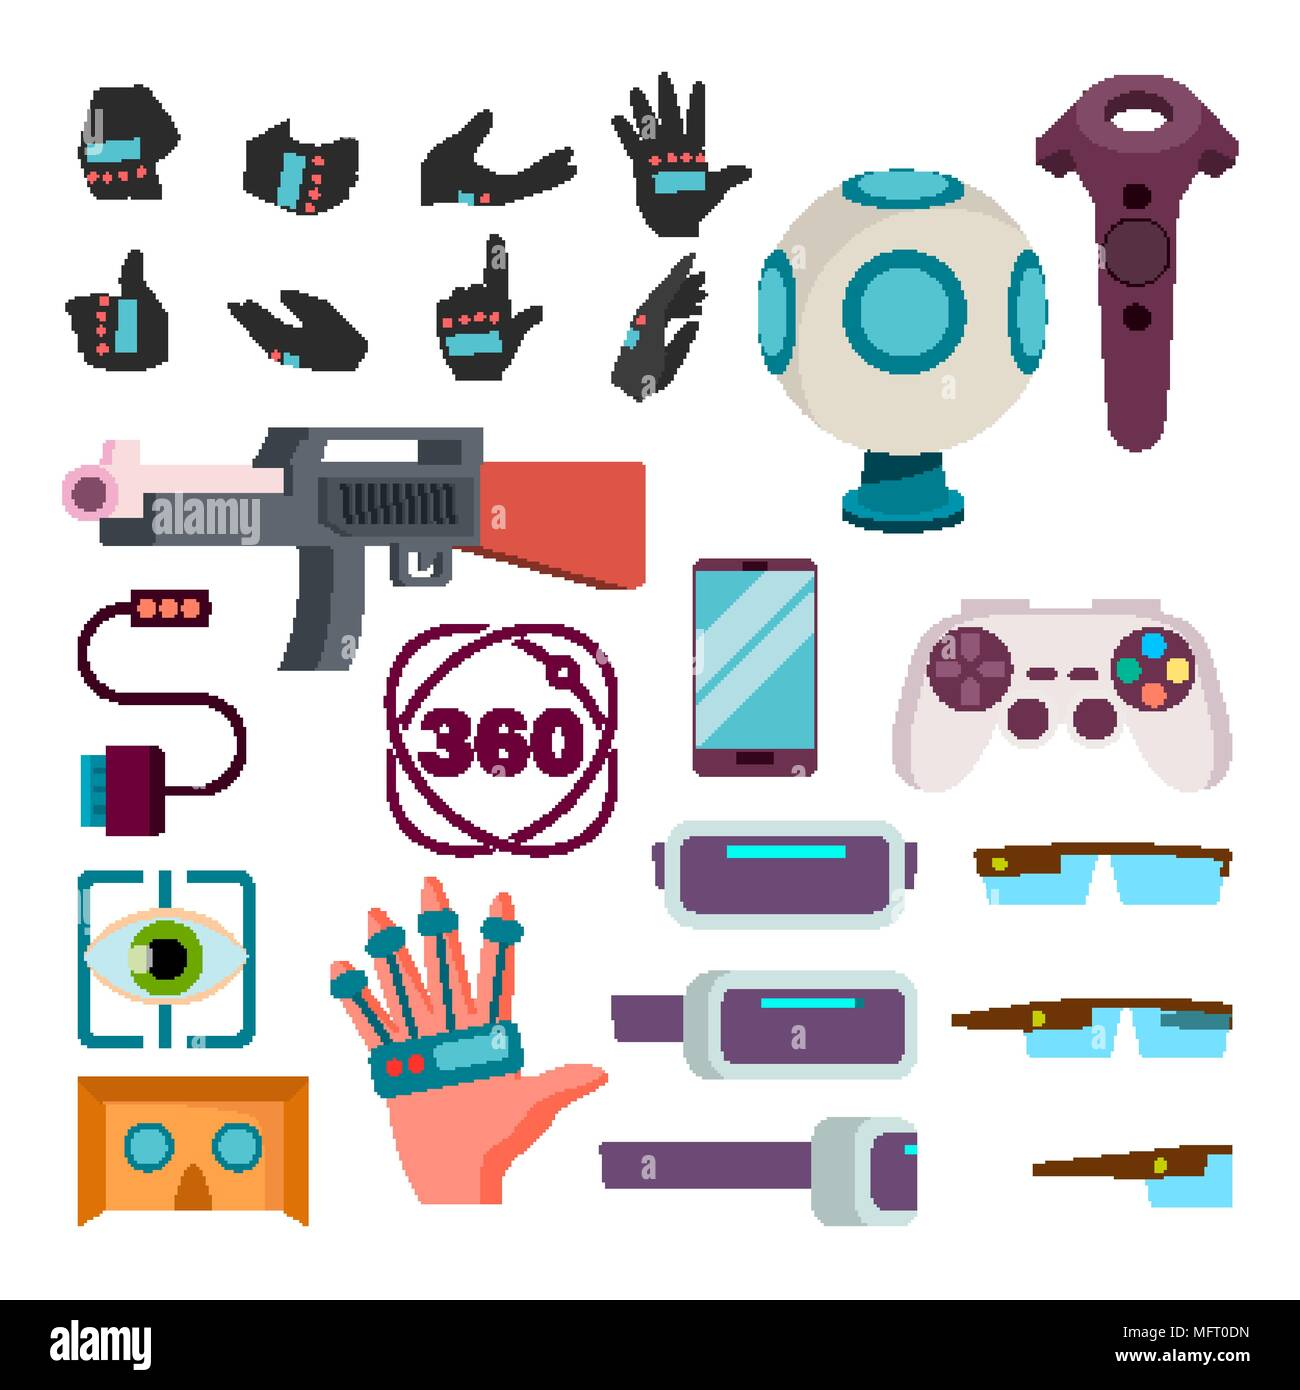 cefa3579549c Virtual Reality Icons Set Vector. Virtual Reality VR Accessories. Weapon